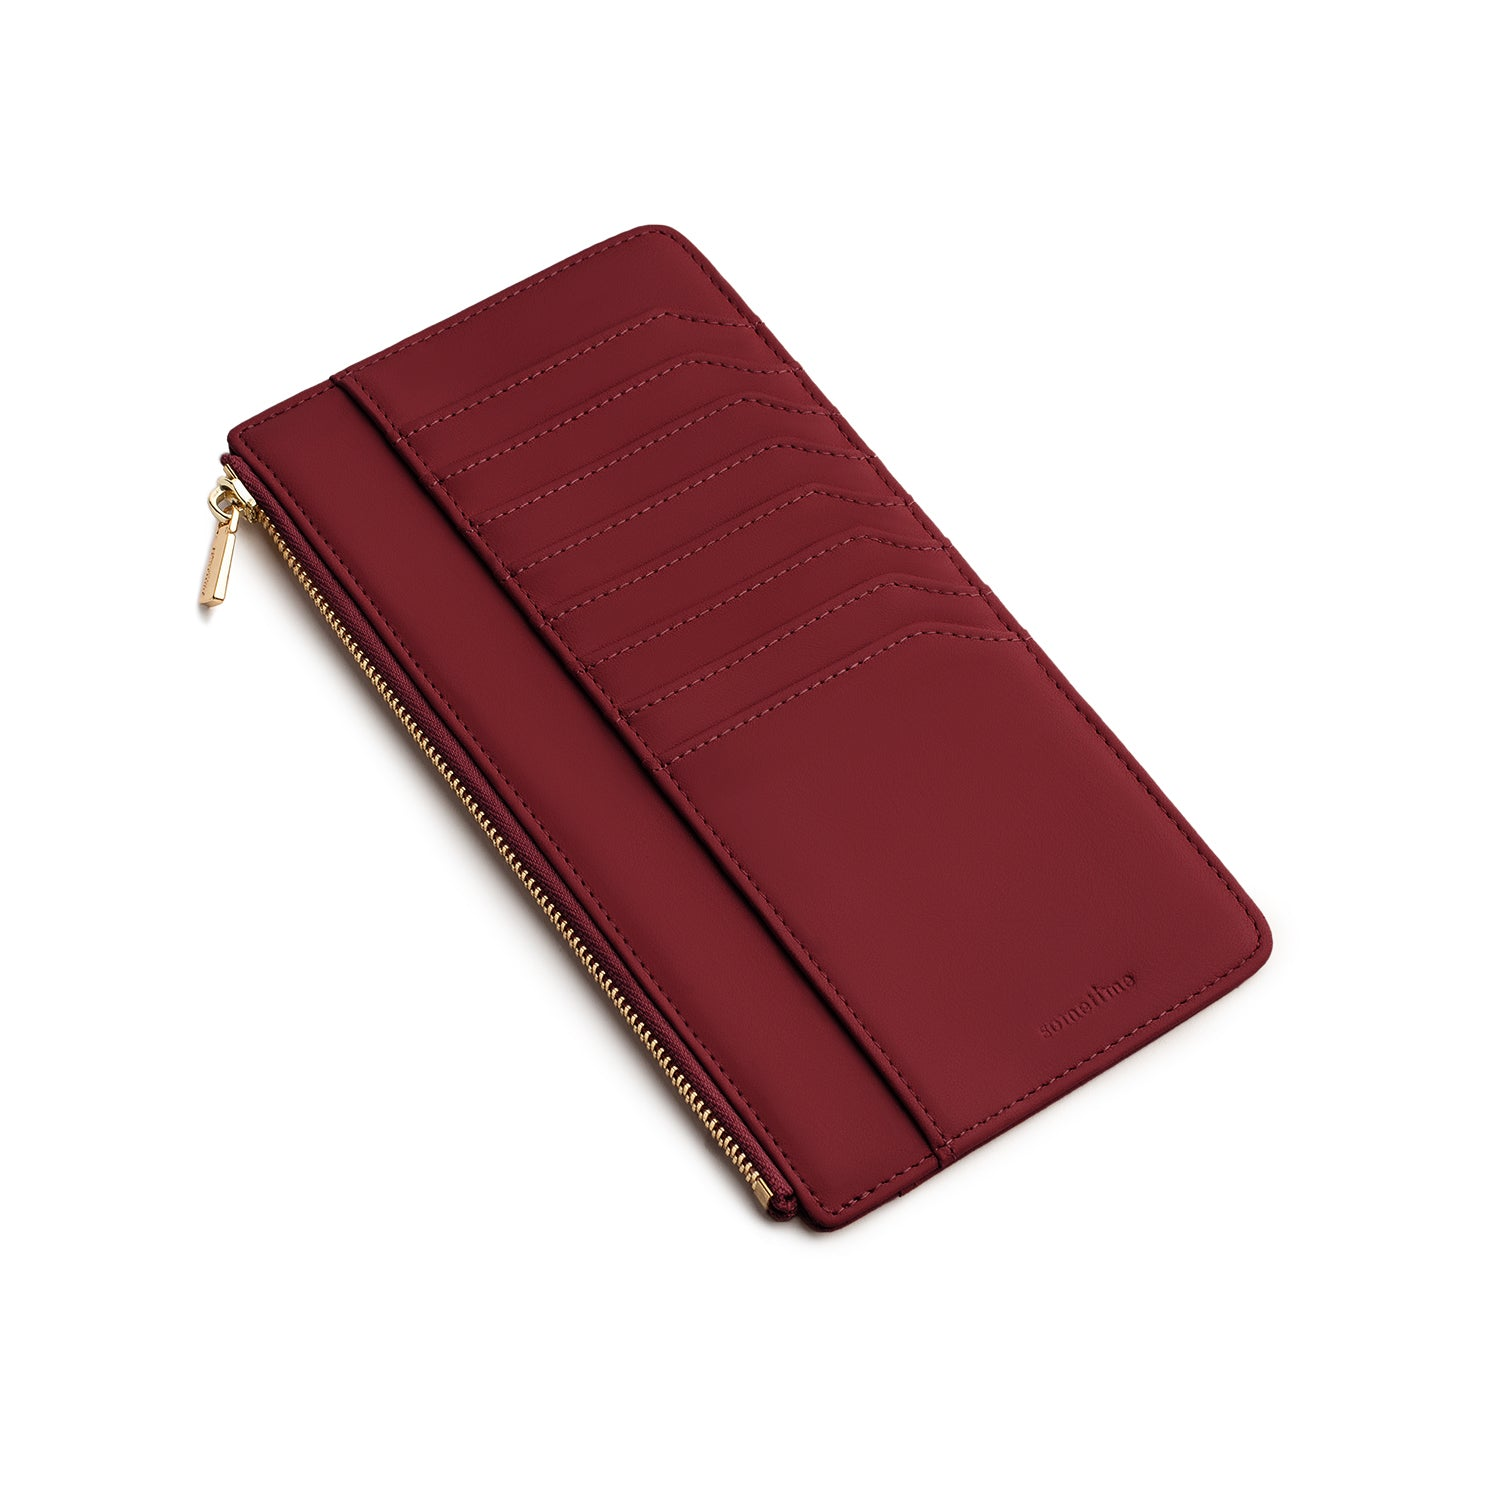 ESCARD L - WINE RED